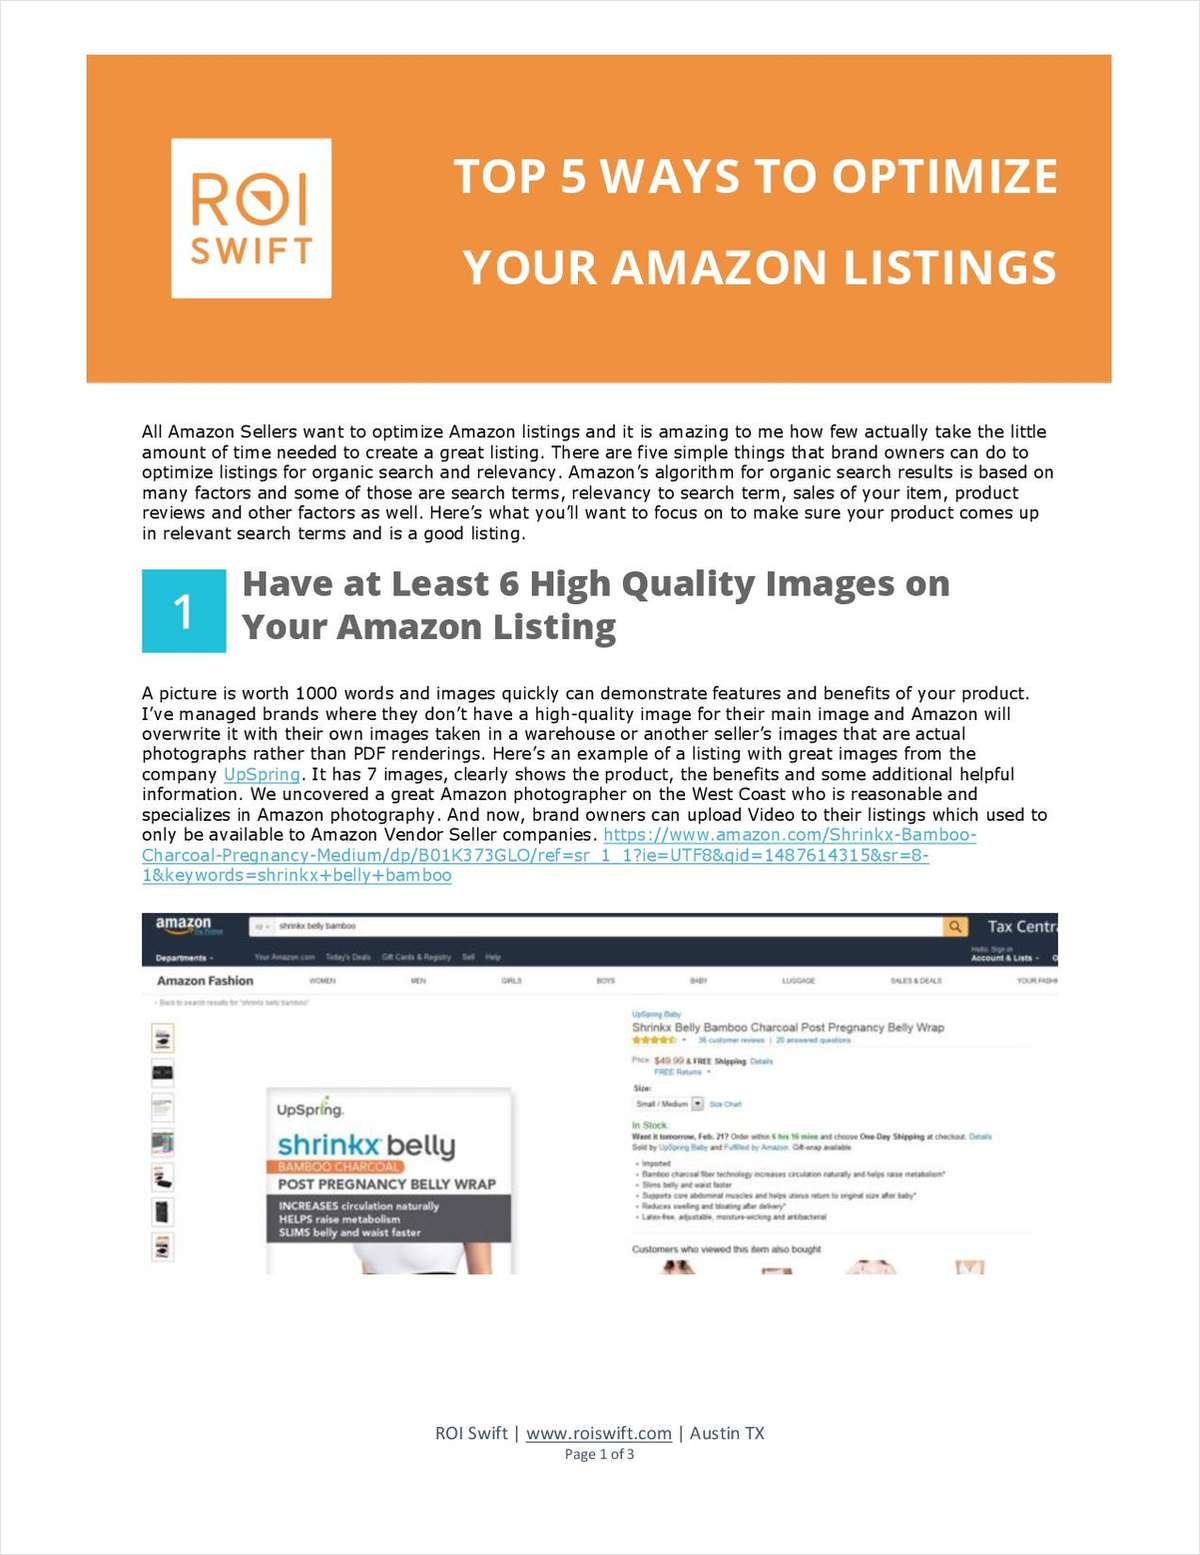 Top 5 Ways to Optimize Your Amazon Listings for Conversion